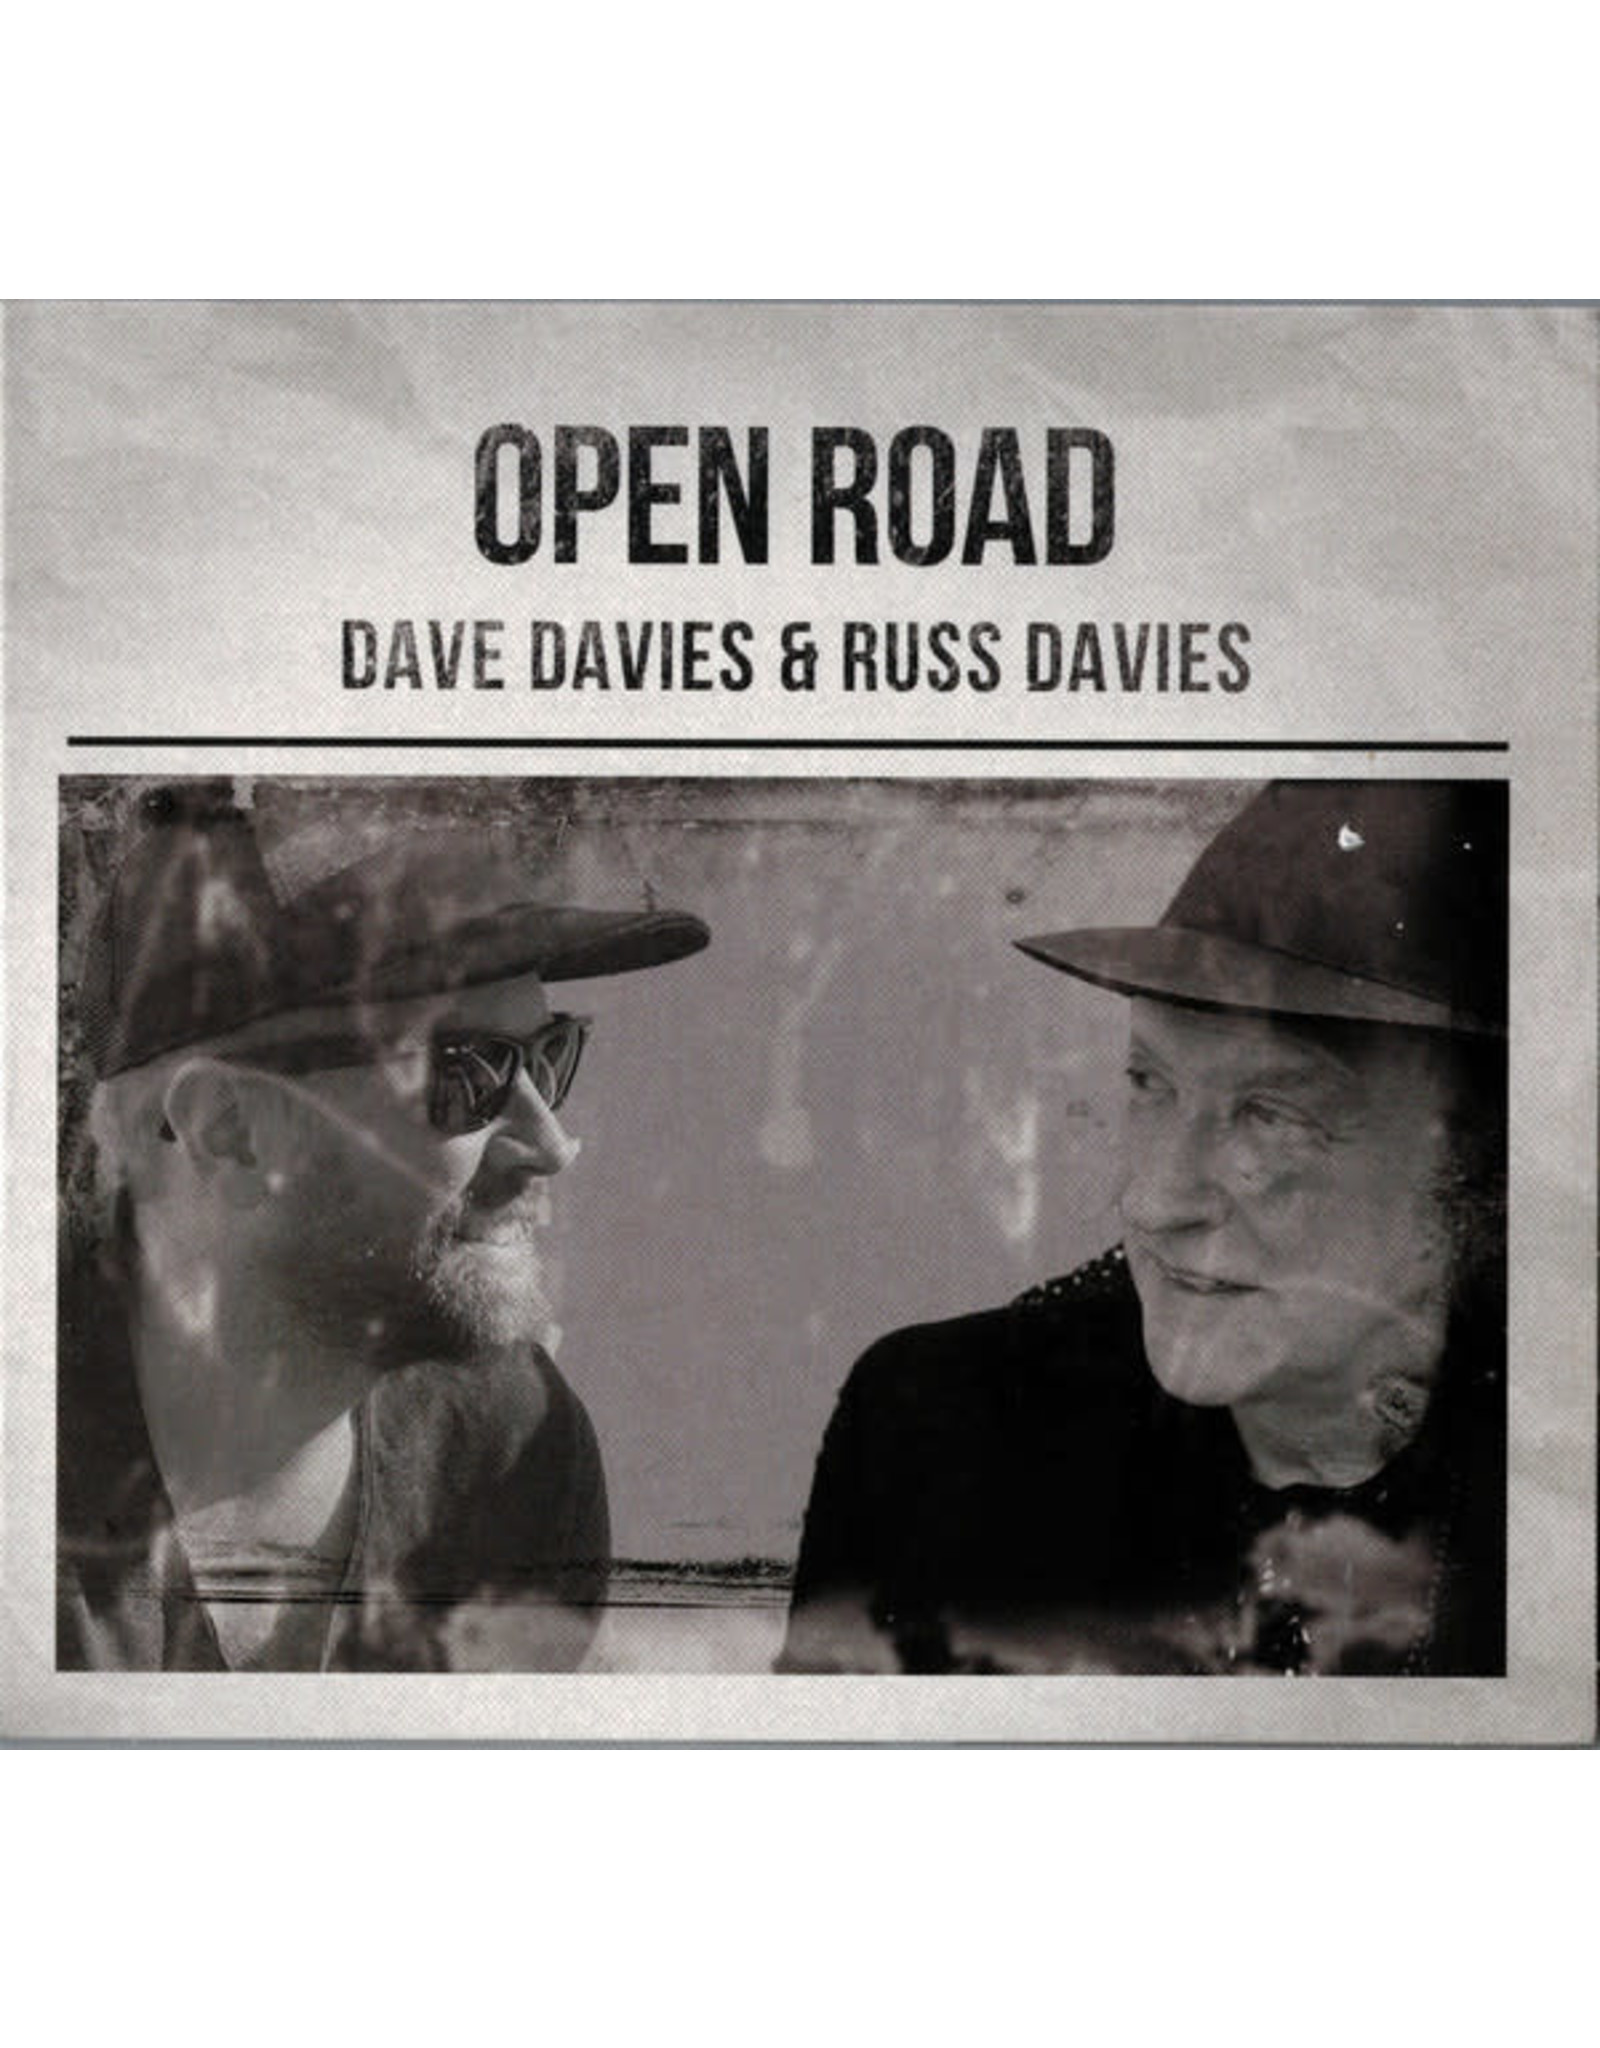 Davies, Dave and Russ - Open Road LP